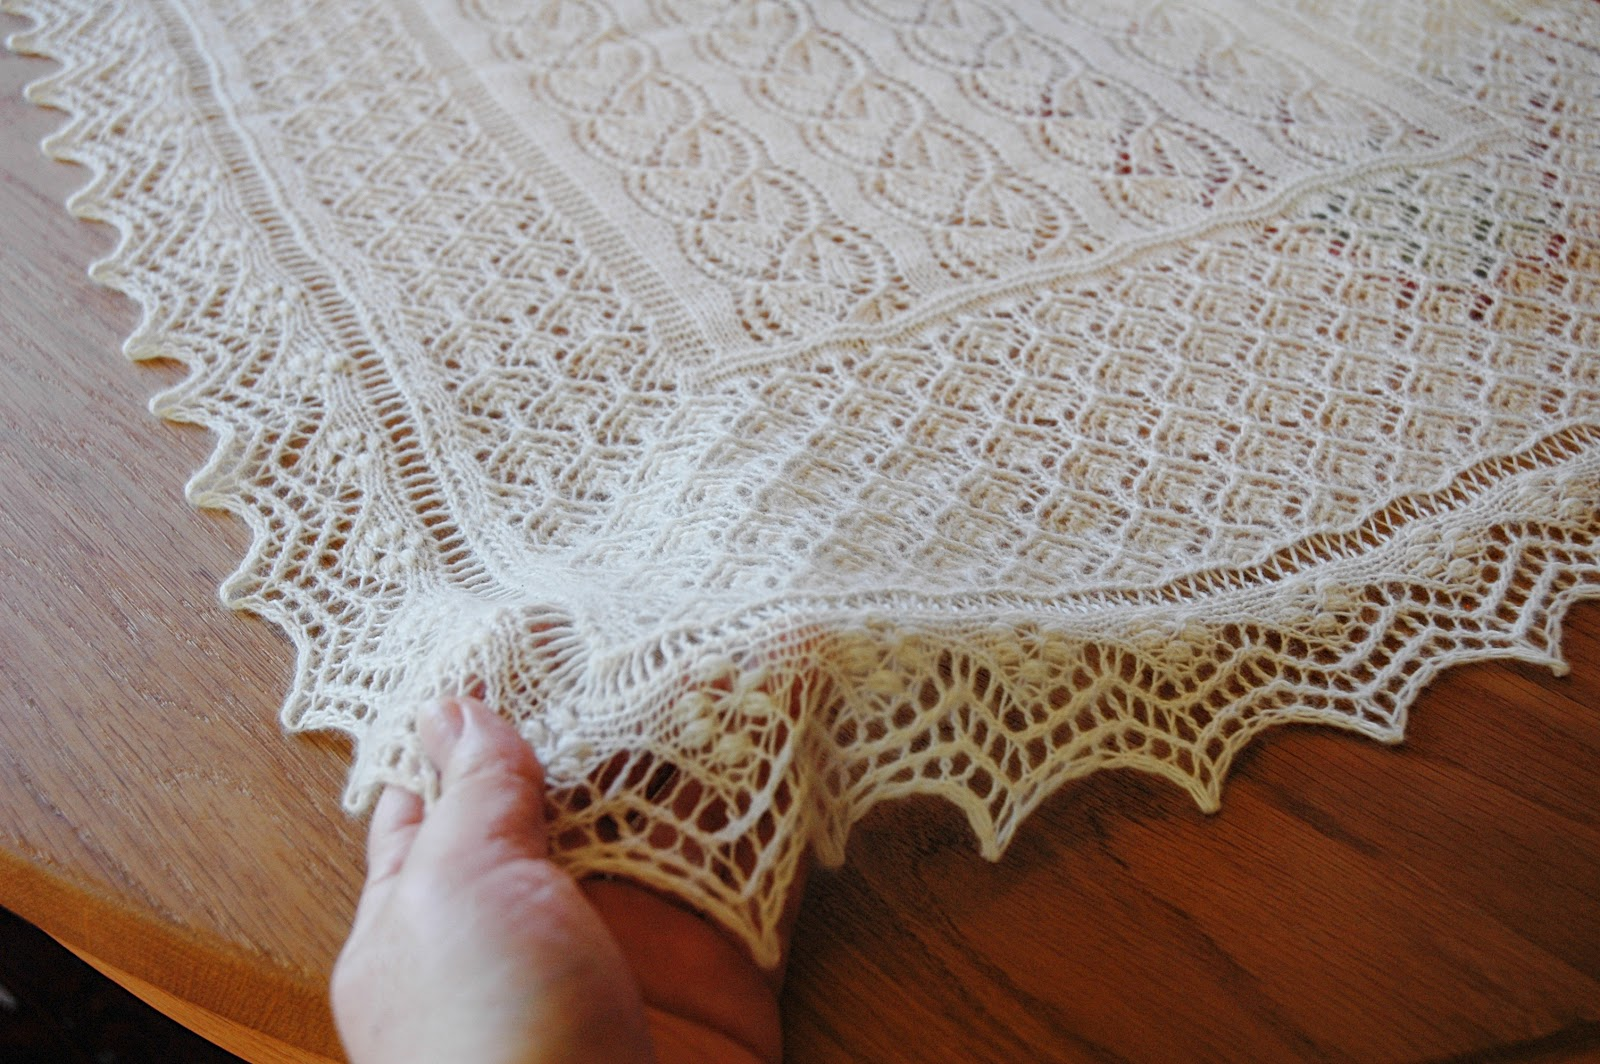 Things I love to make: The Day flower shawl